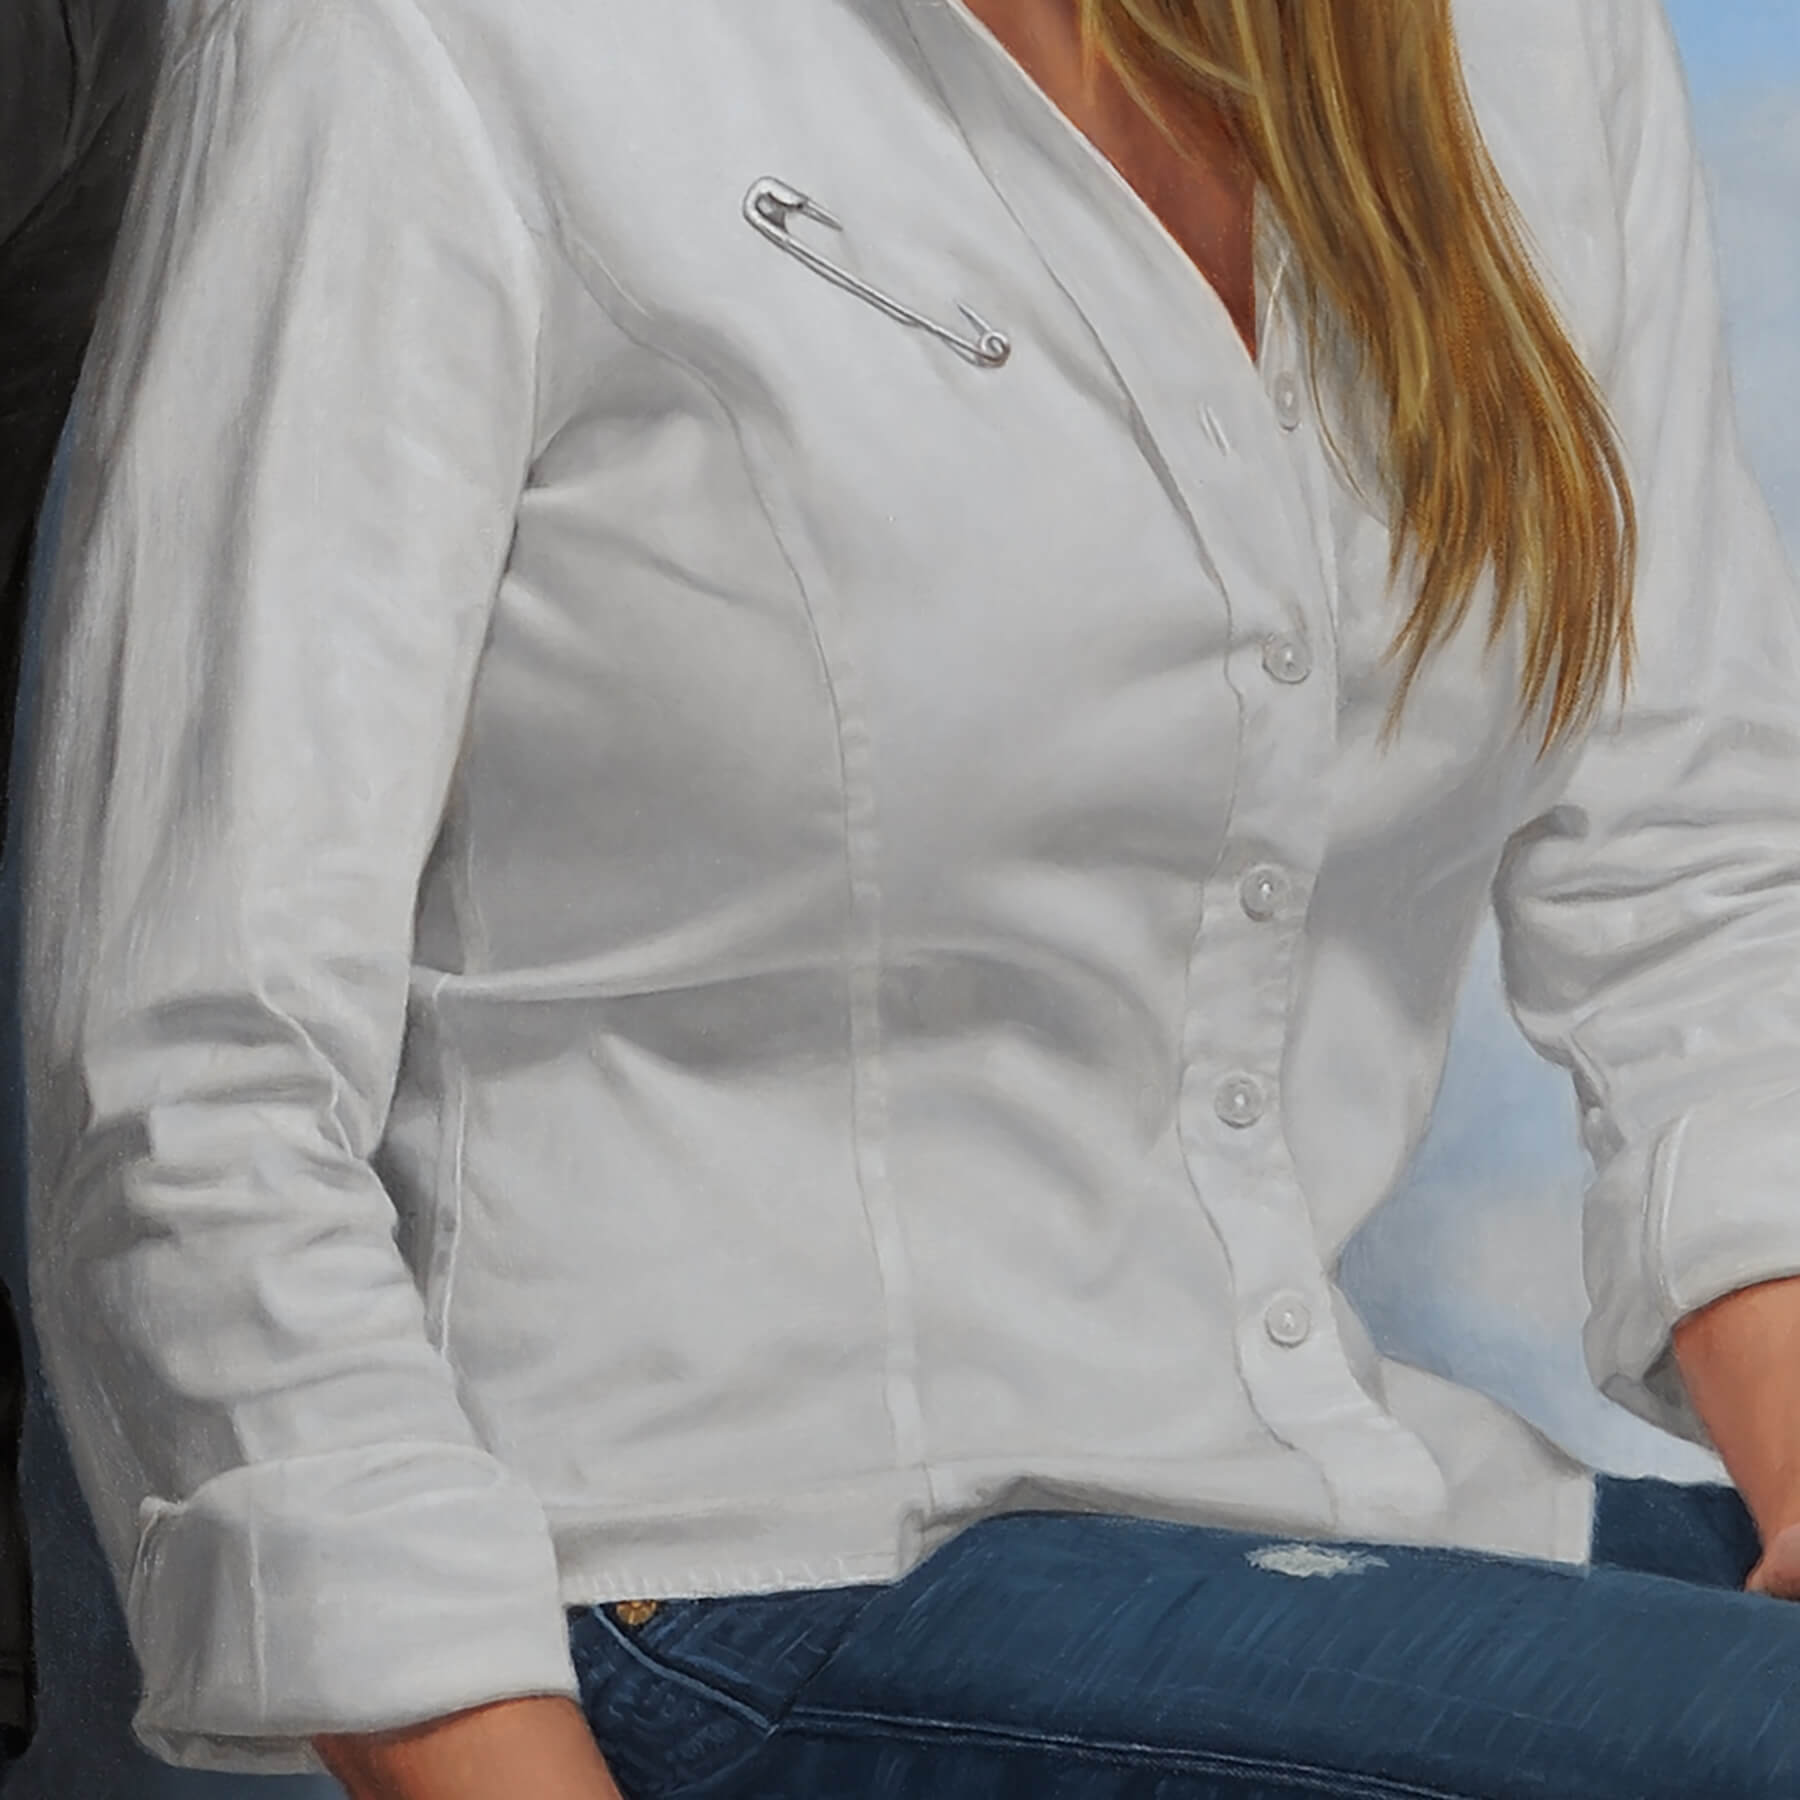 Fine Art Contemporary OilCommission; detail of white shirt with safety pin